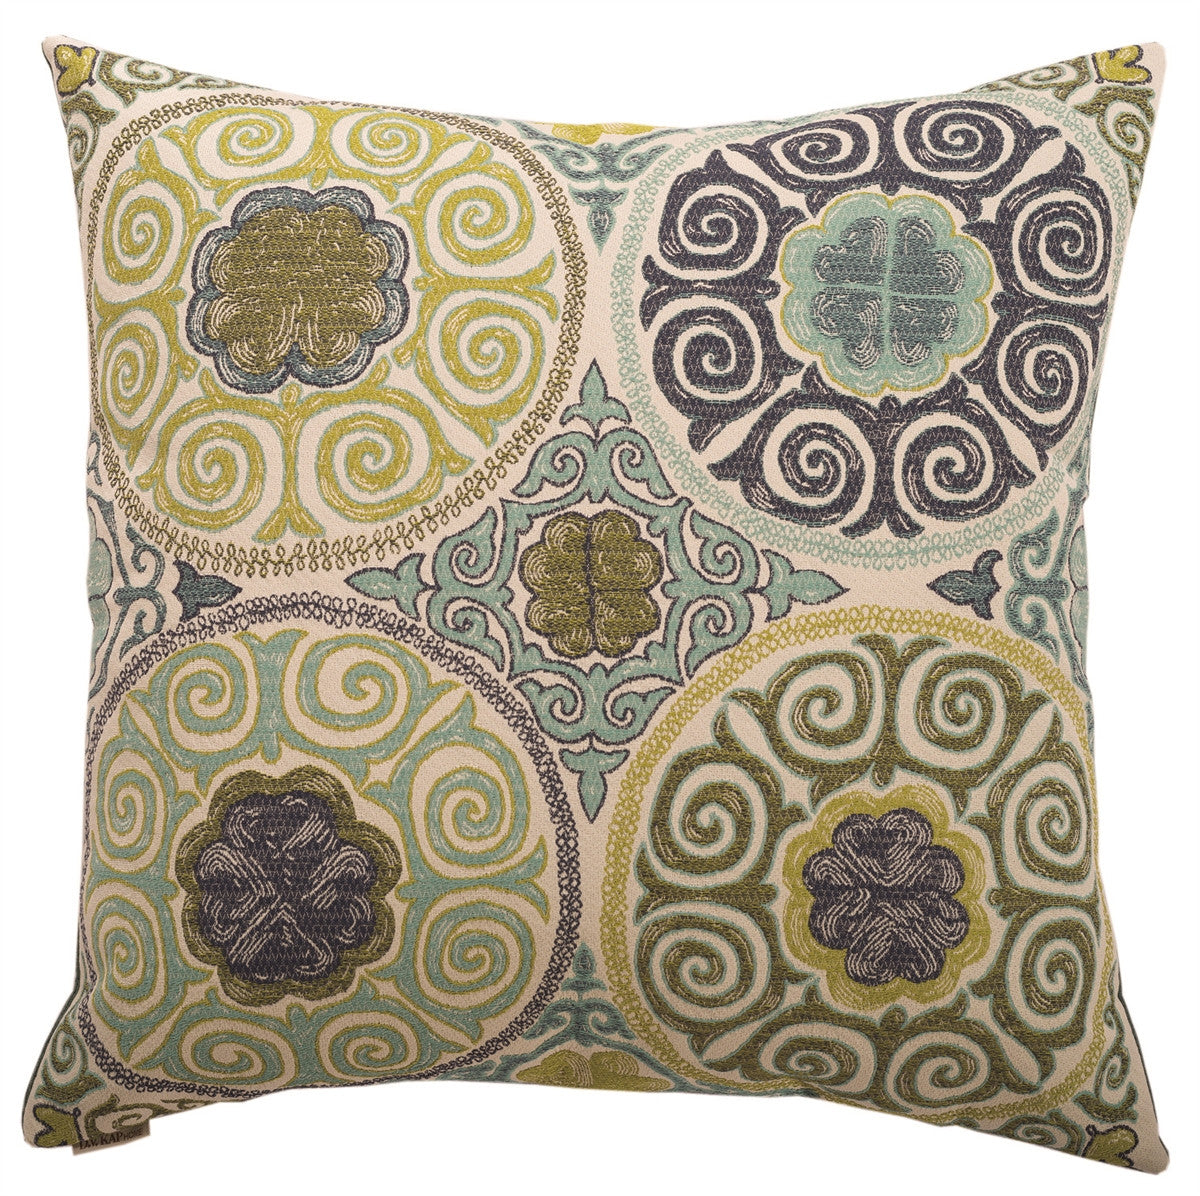 DV Kap Home - Ishtihon Toss Pillow